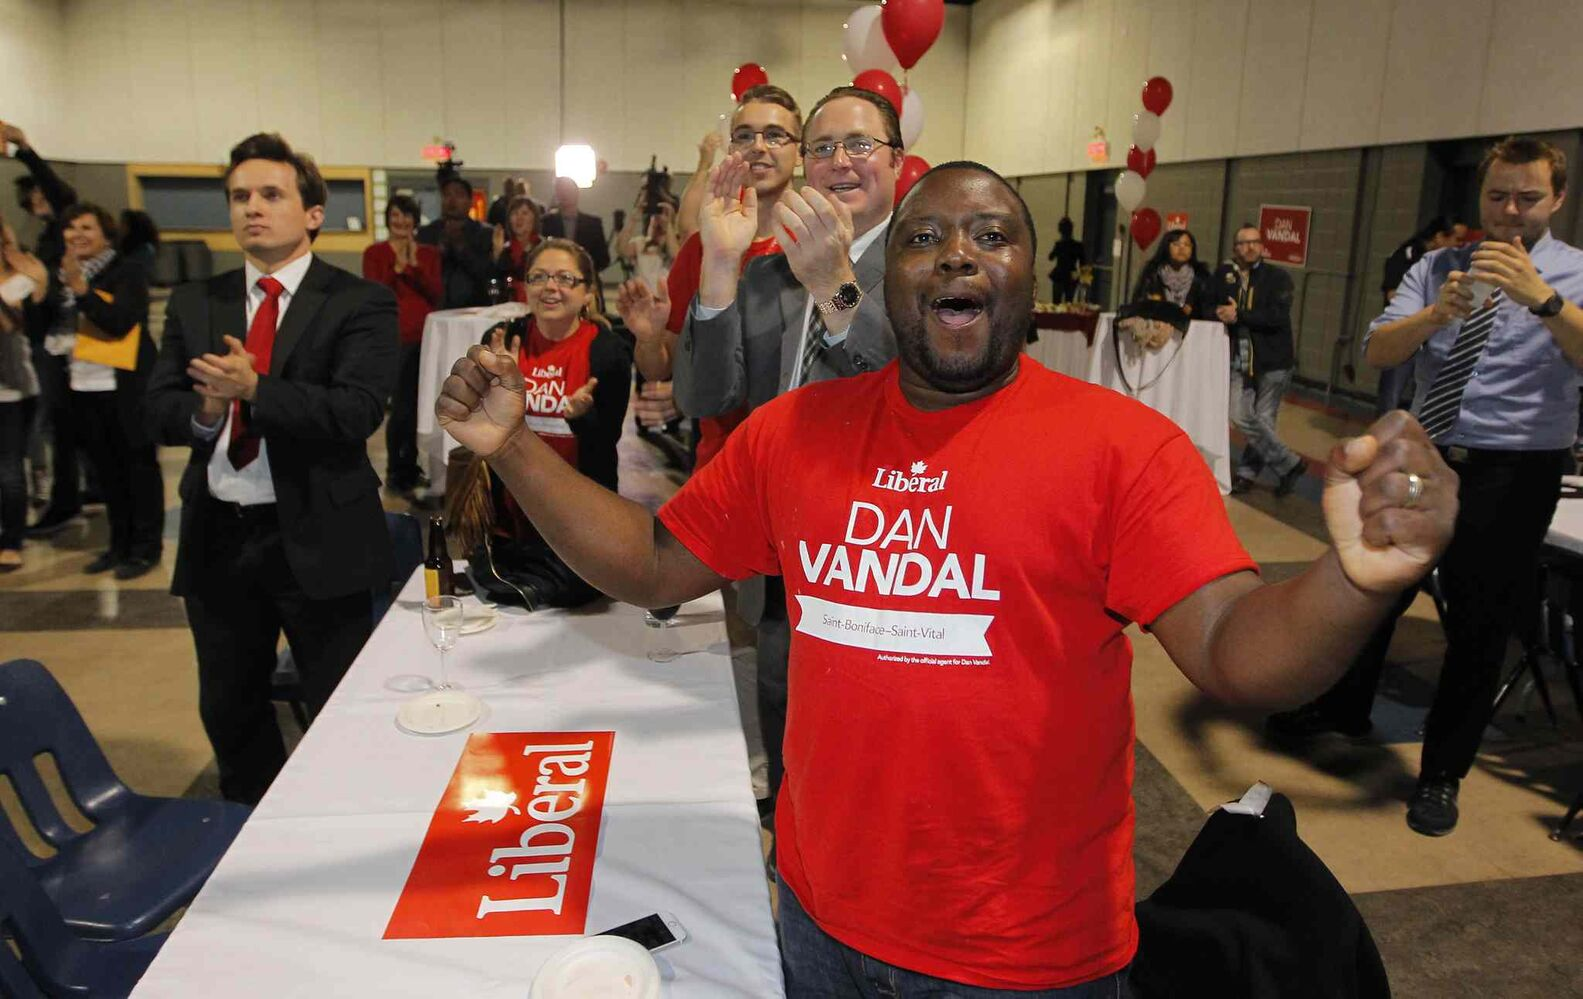 Liberal Dan Vandal party at the Franco-Manitoban Cultural Centre.  (BORIS MINKEVICH / WINNIPEG FREE PRESS)